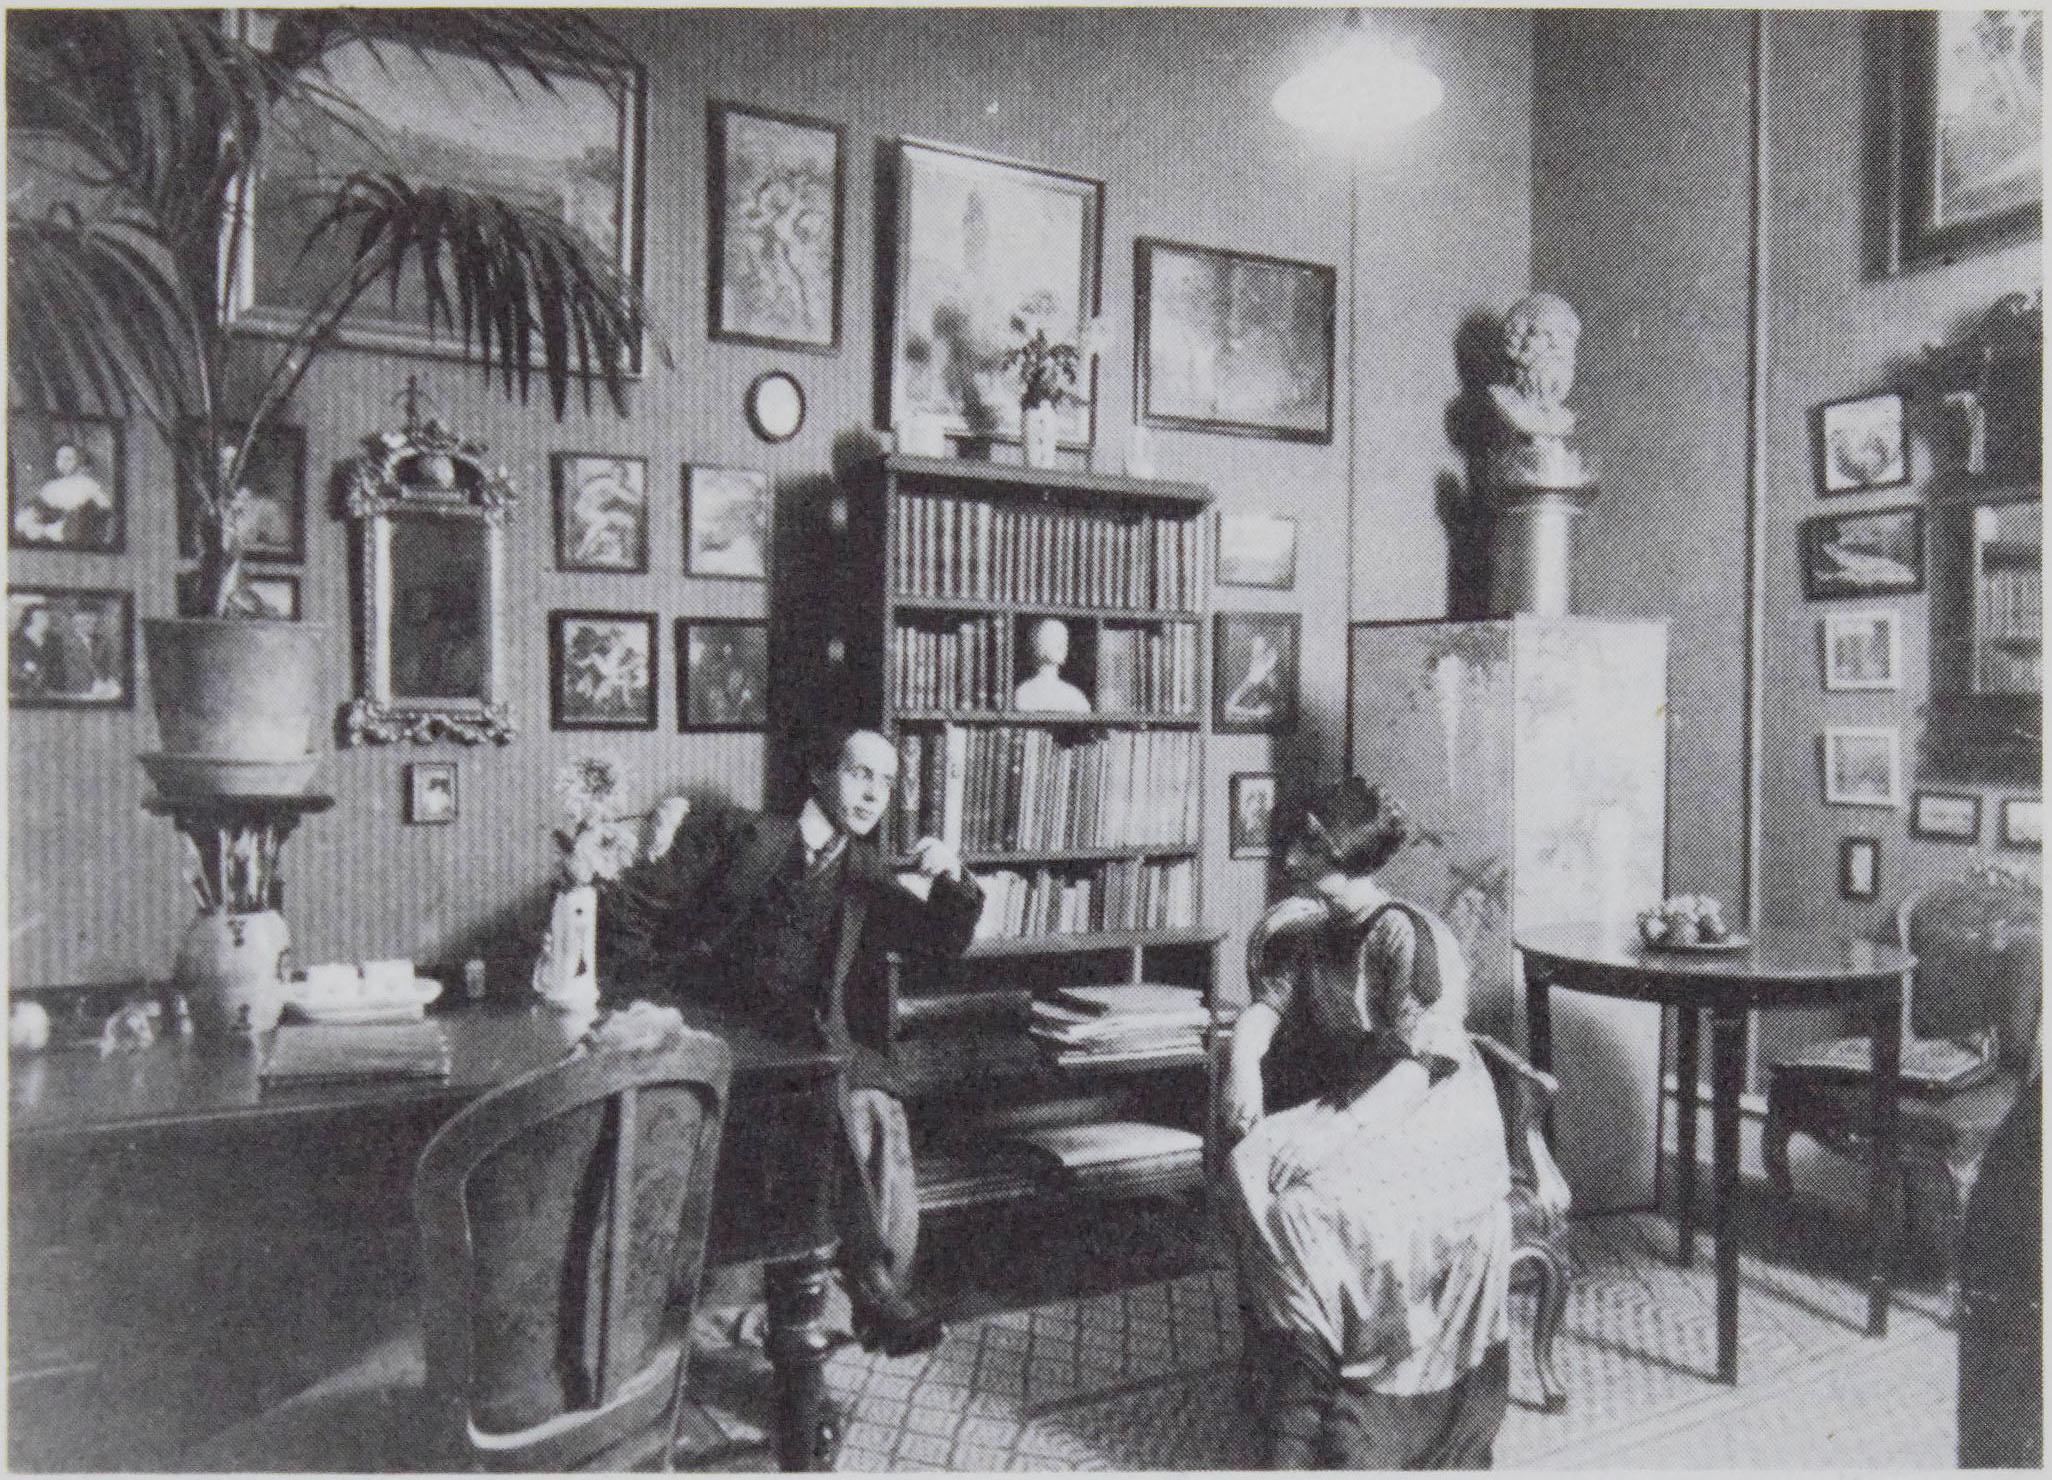 The photo is at the top of the page and is credited to                      Politiken Press. It shows Einar and Gerda Wegener sitting in chairs a few feet                      apart in a room in their home that is filled with art and books.